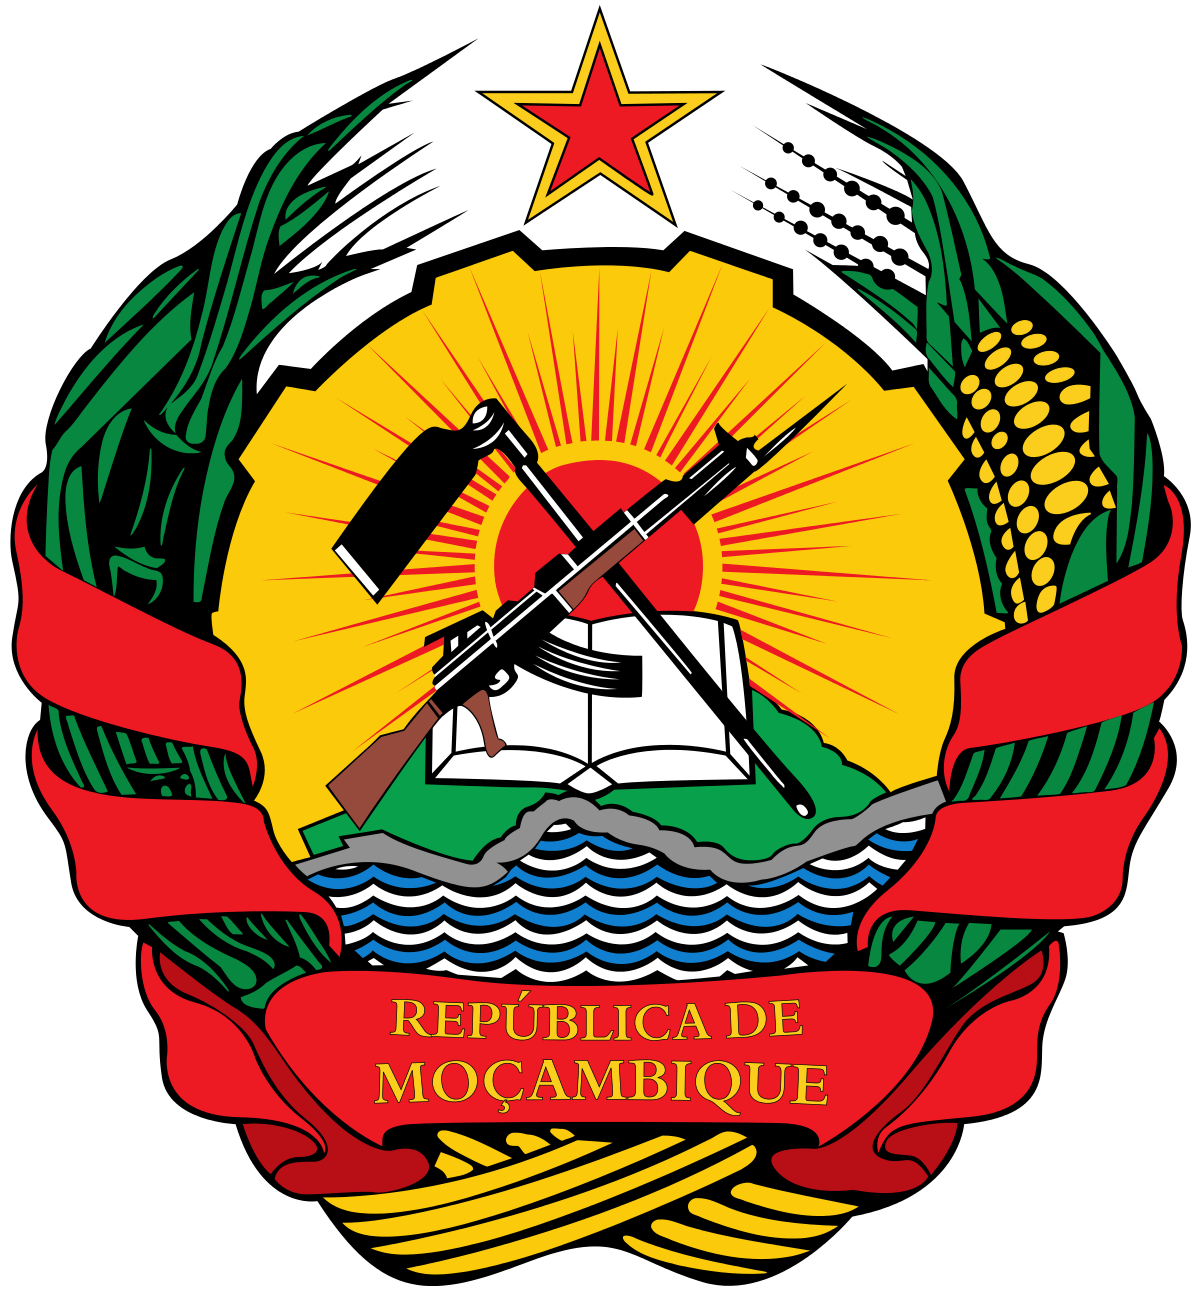 Election clipart presidential inauguration. Emblem of mozambique wikipedia